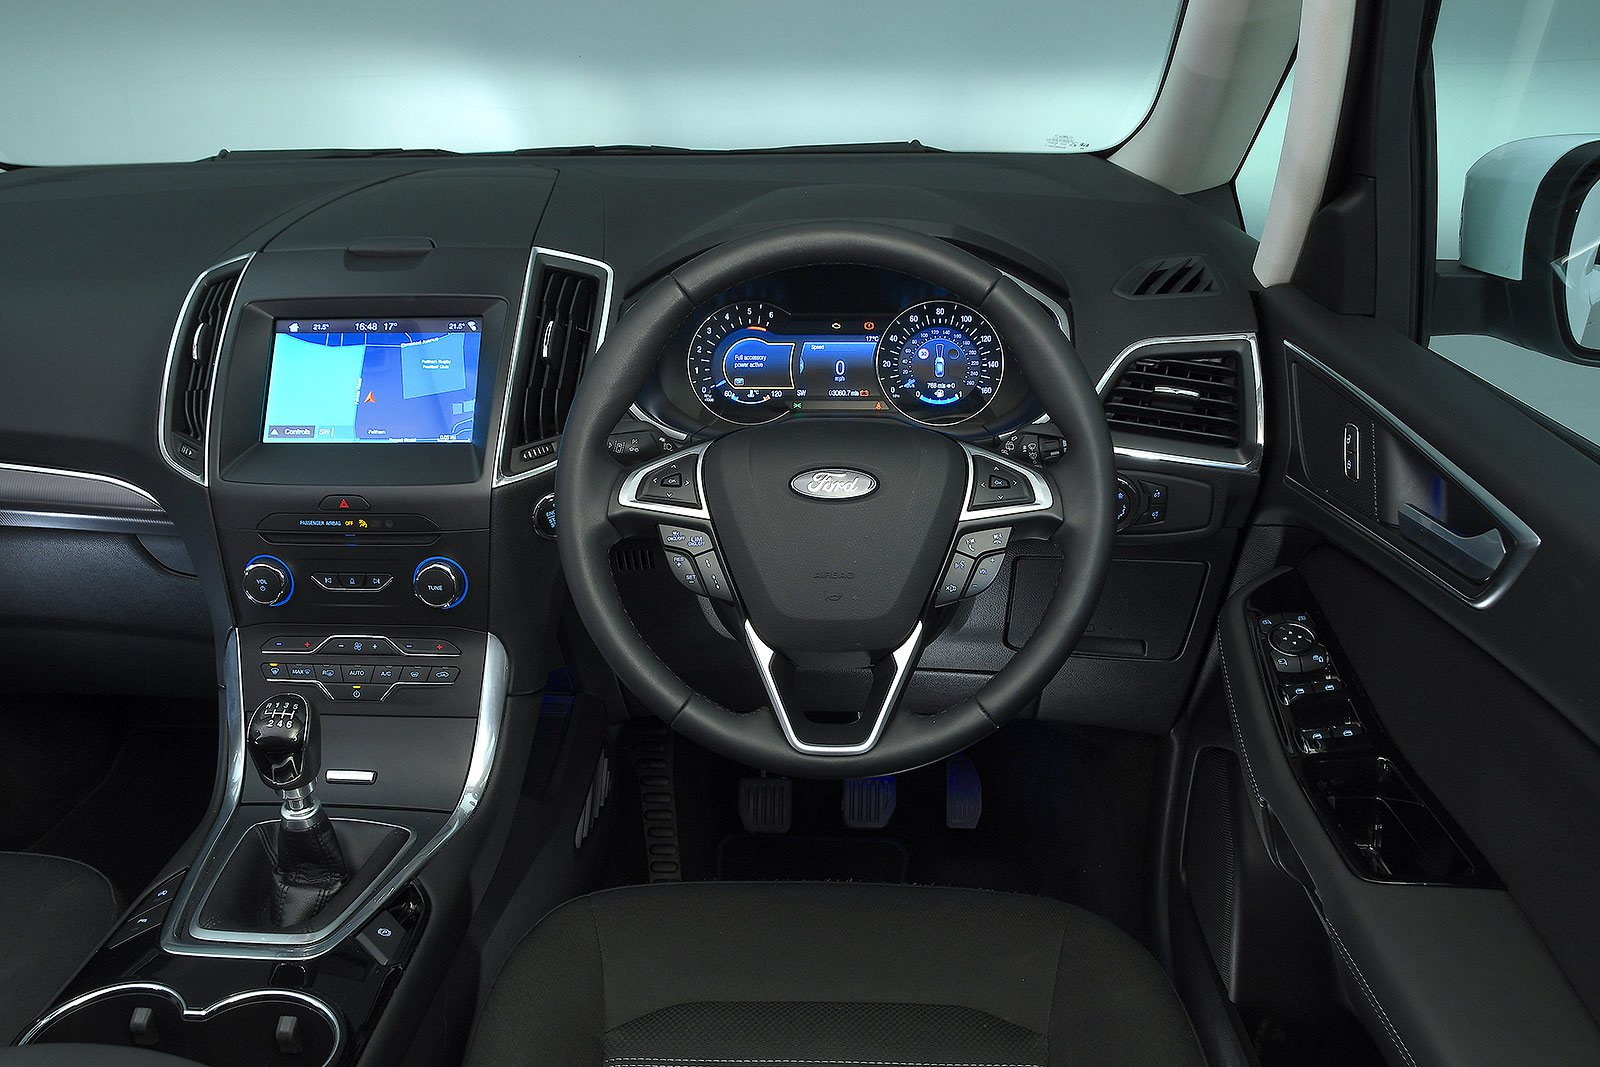 Ford Galaxy Titanium 2.0 EcoBlue 150PS - interior